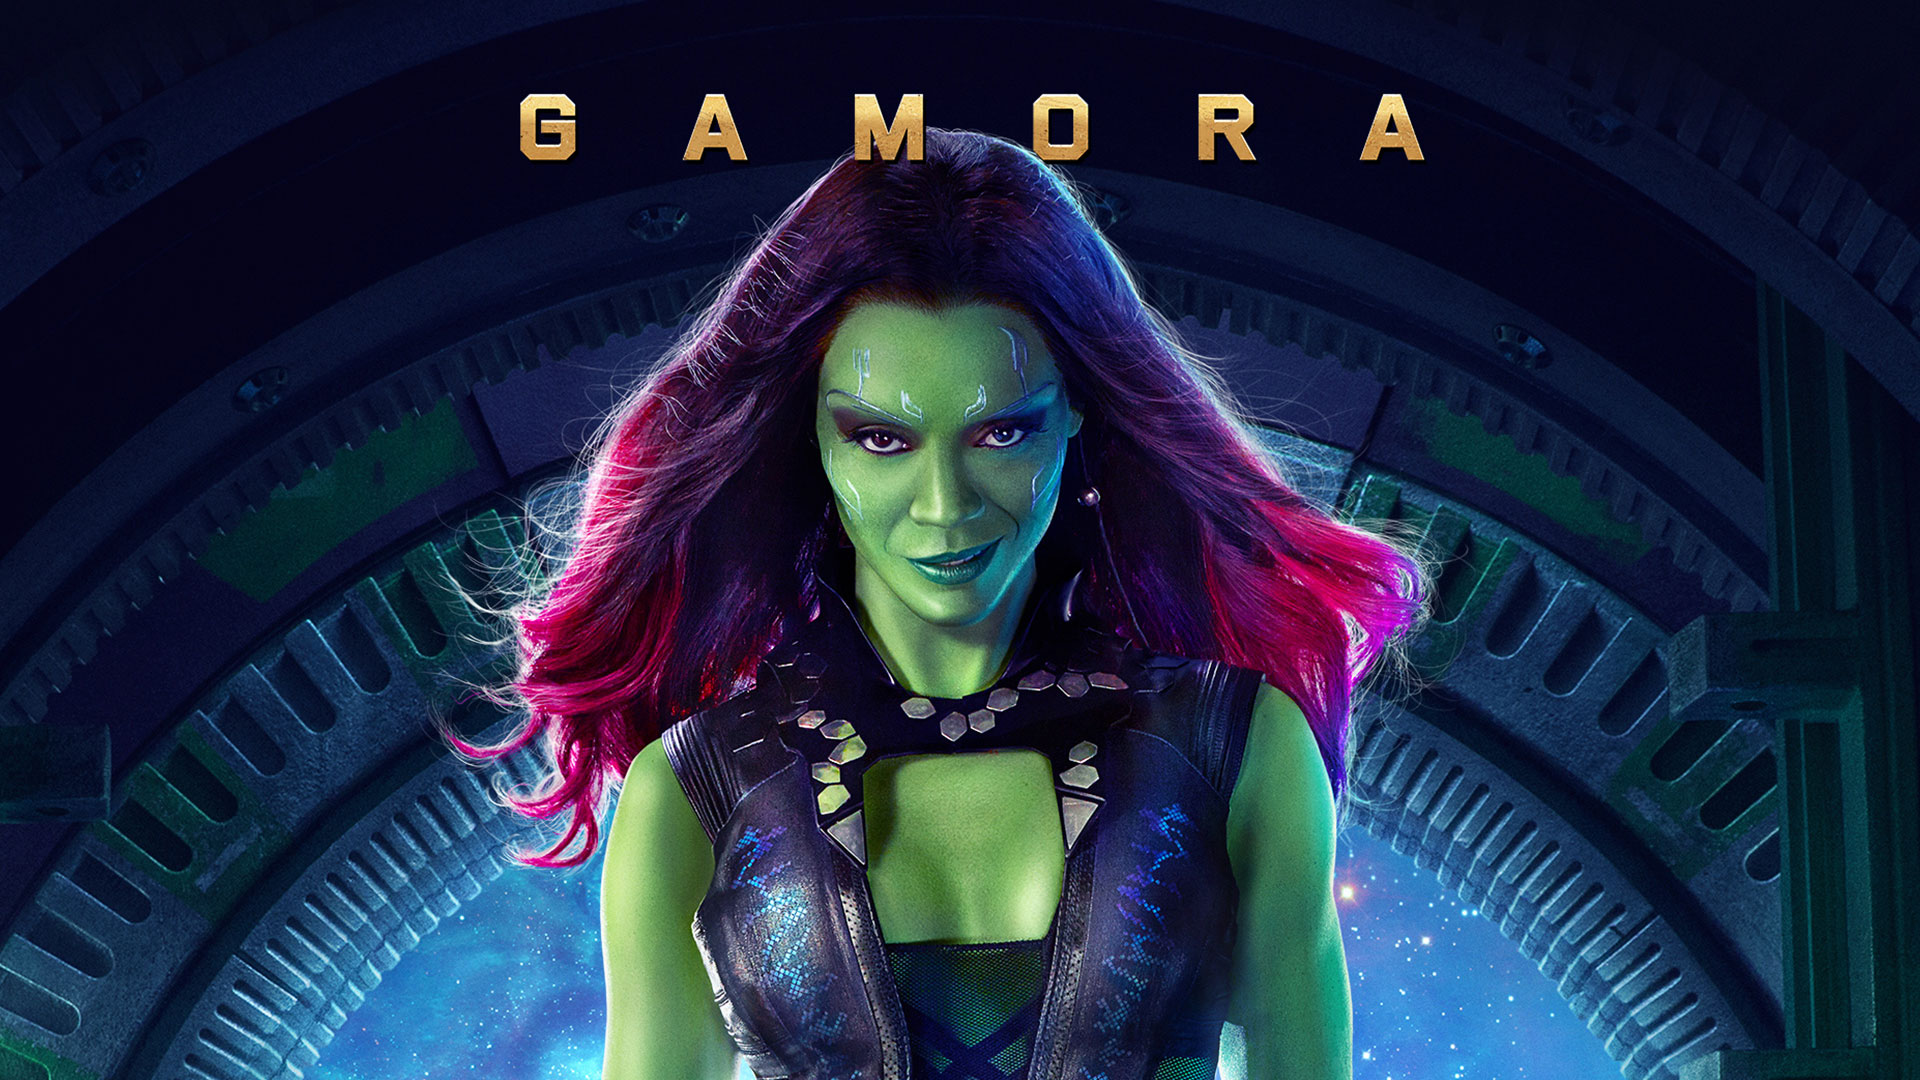 guardians-of-the-galaxy-gamora-wallpaper-hd1